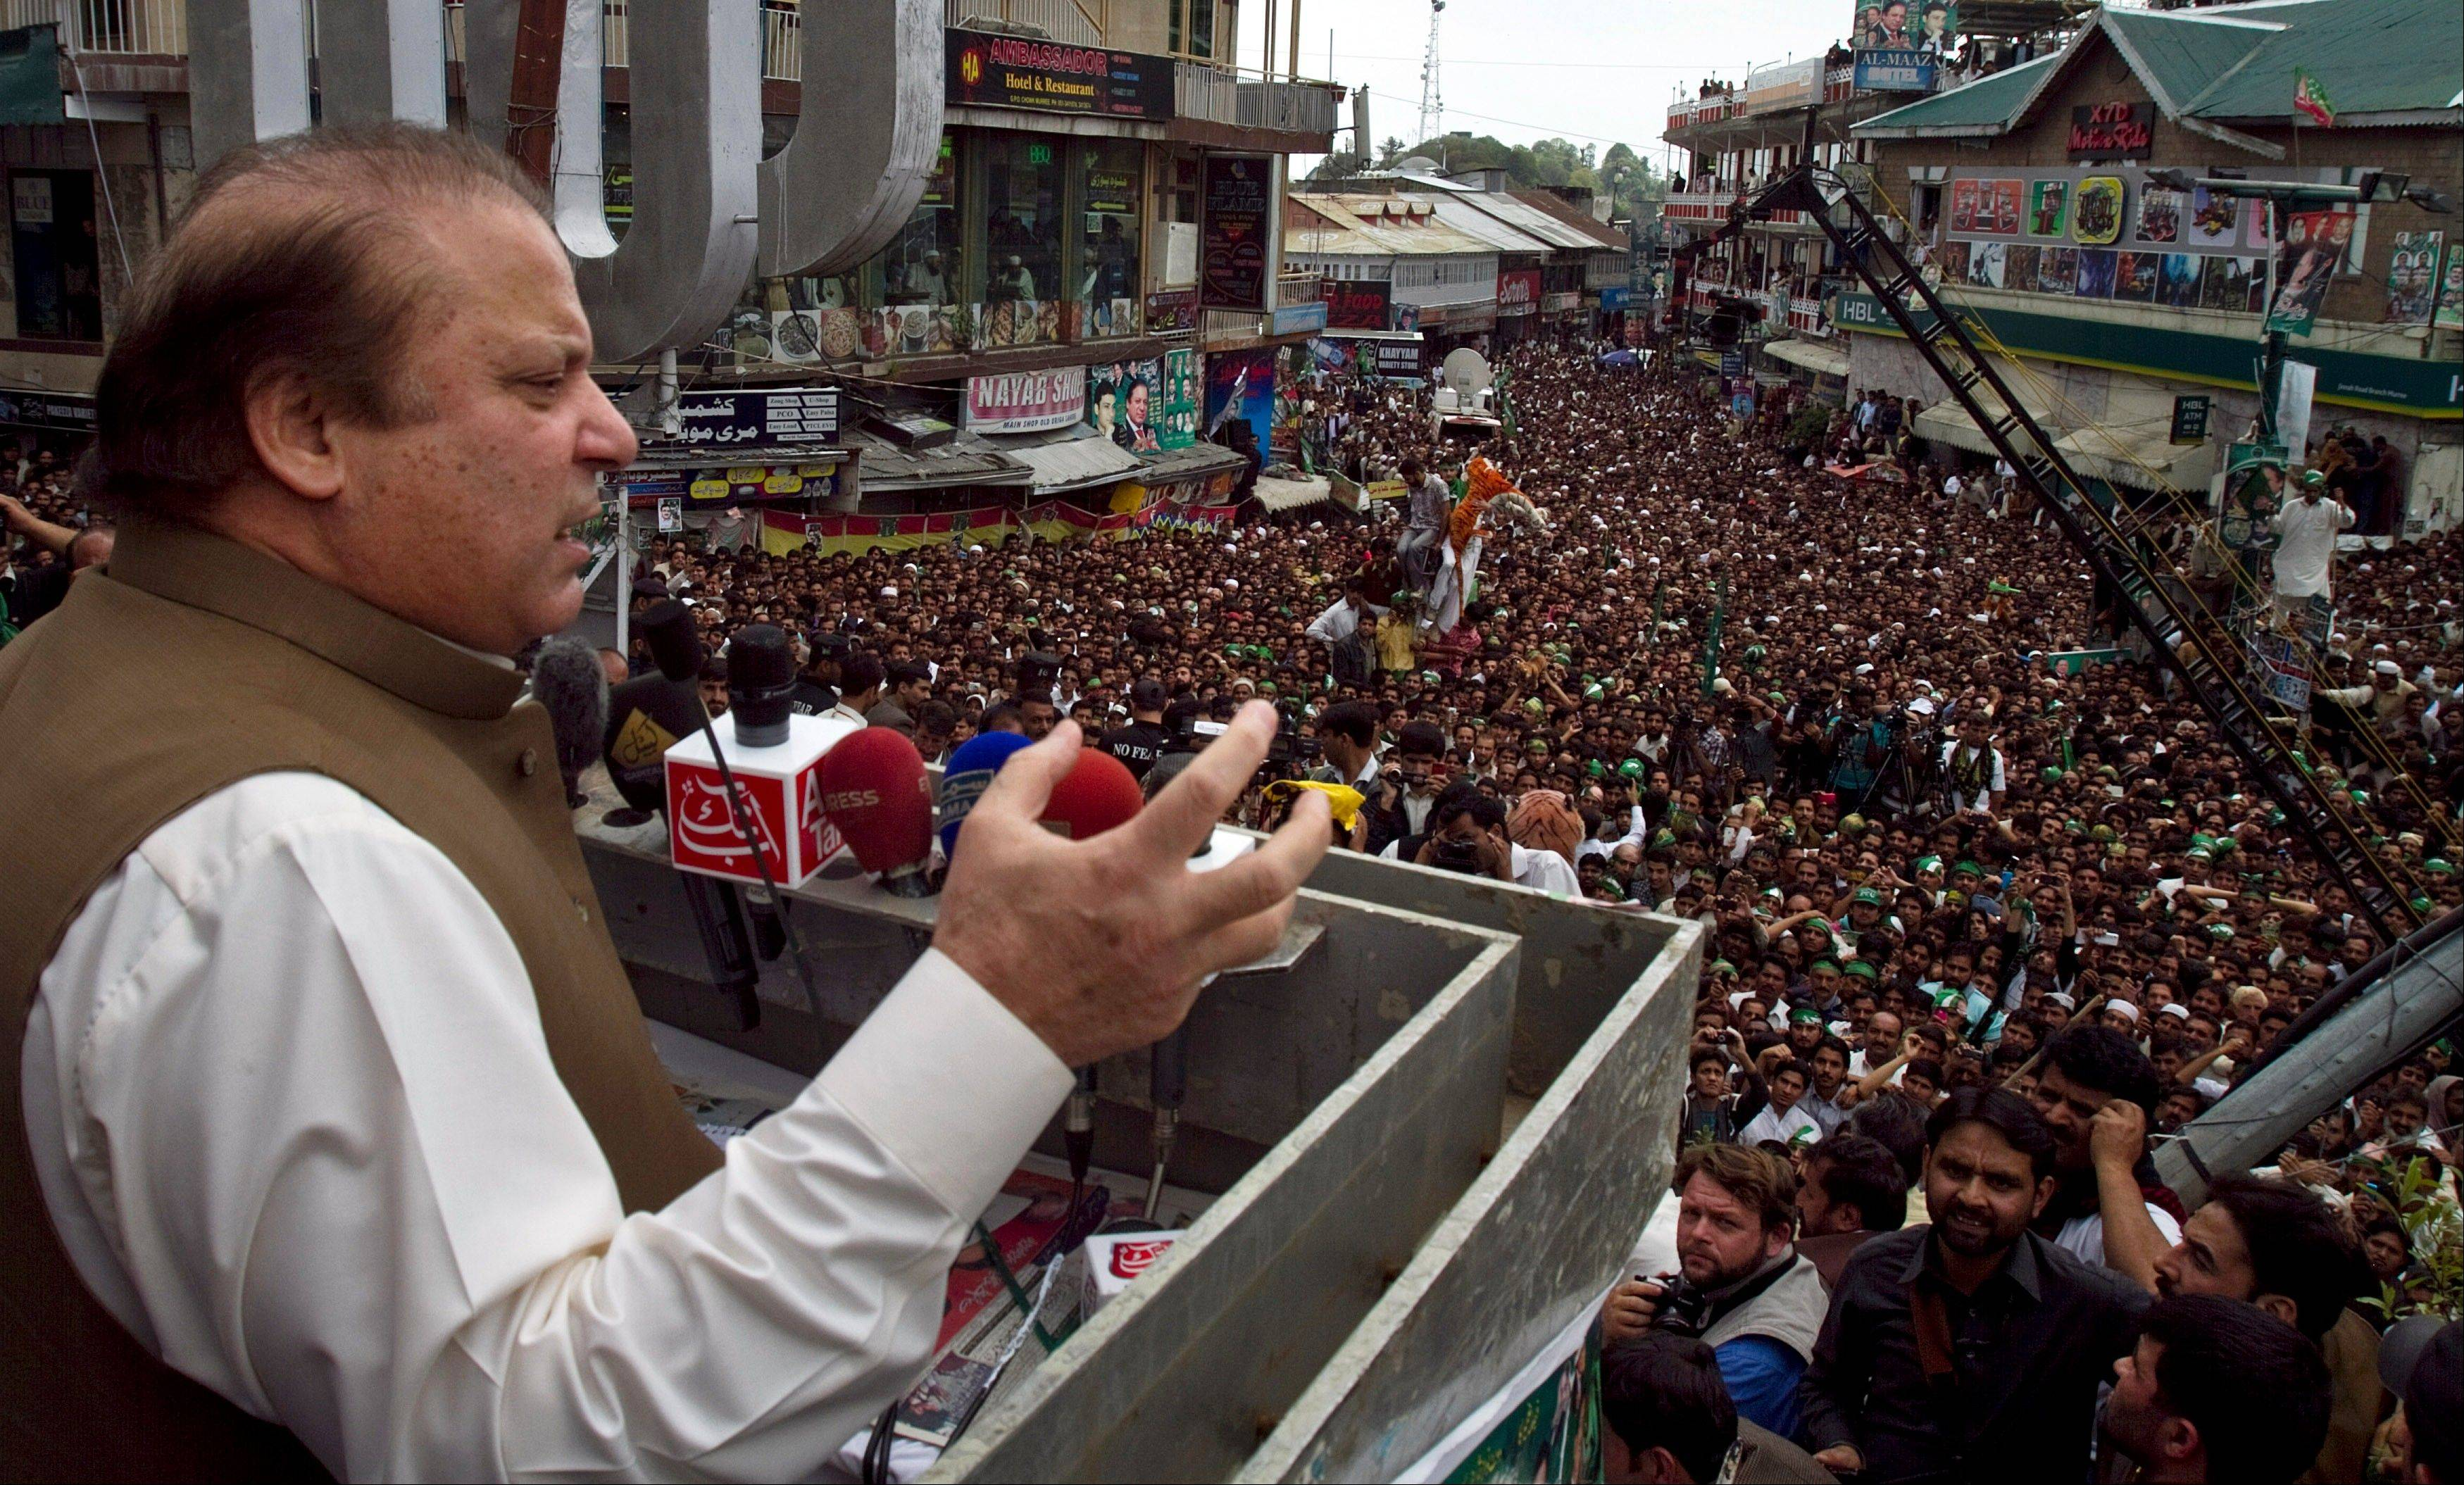 Pakistan�s former Prime Minister and leader of the Pakistan Muslim League Nawaz Sharif has criticized the outgoing Pakistan People�s Party for selling out the country�s sovereignty in exchange for U.S. aid and likes to recount how he tested Pakistan�s first nuclear weapon in 1998 despite American pressure.